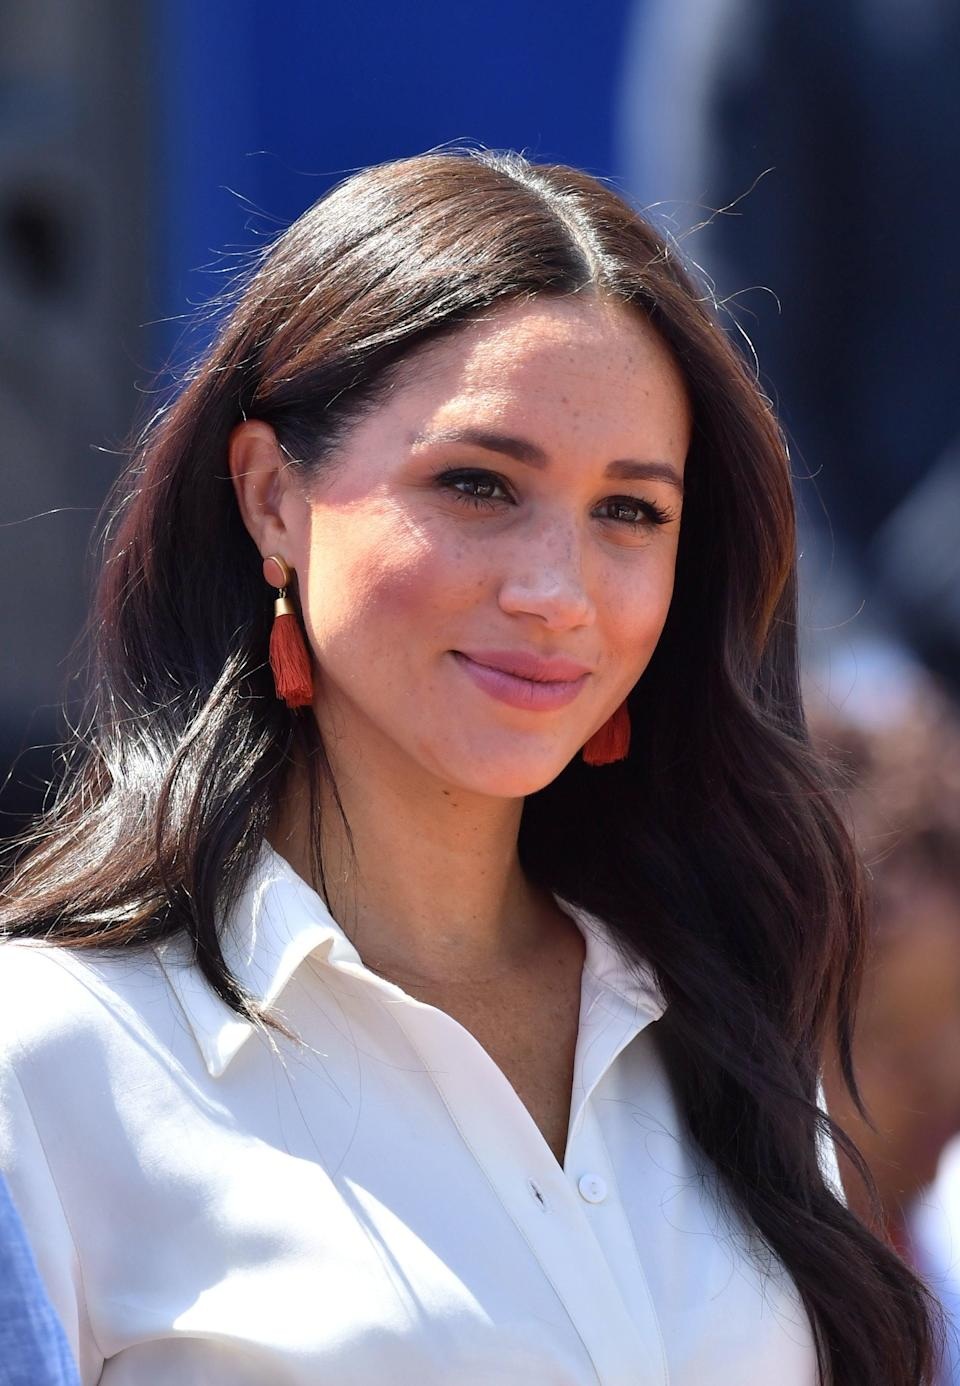 <p>The court ruled on Friday that Associated Newspapers Limited misused the Duchess of Sussex's private information and infringed her copyright</p> (PA)